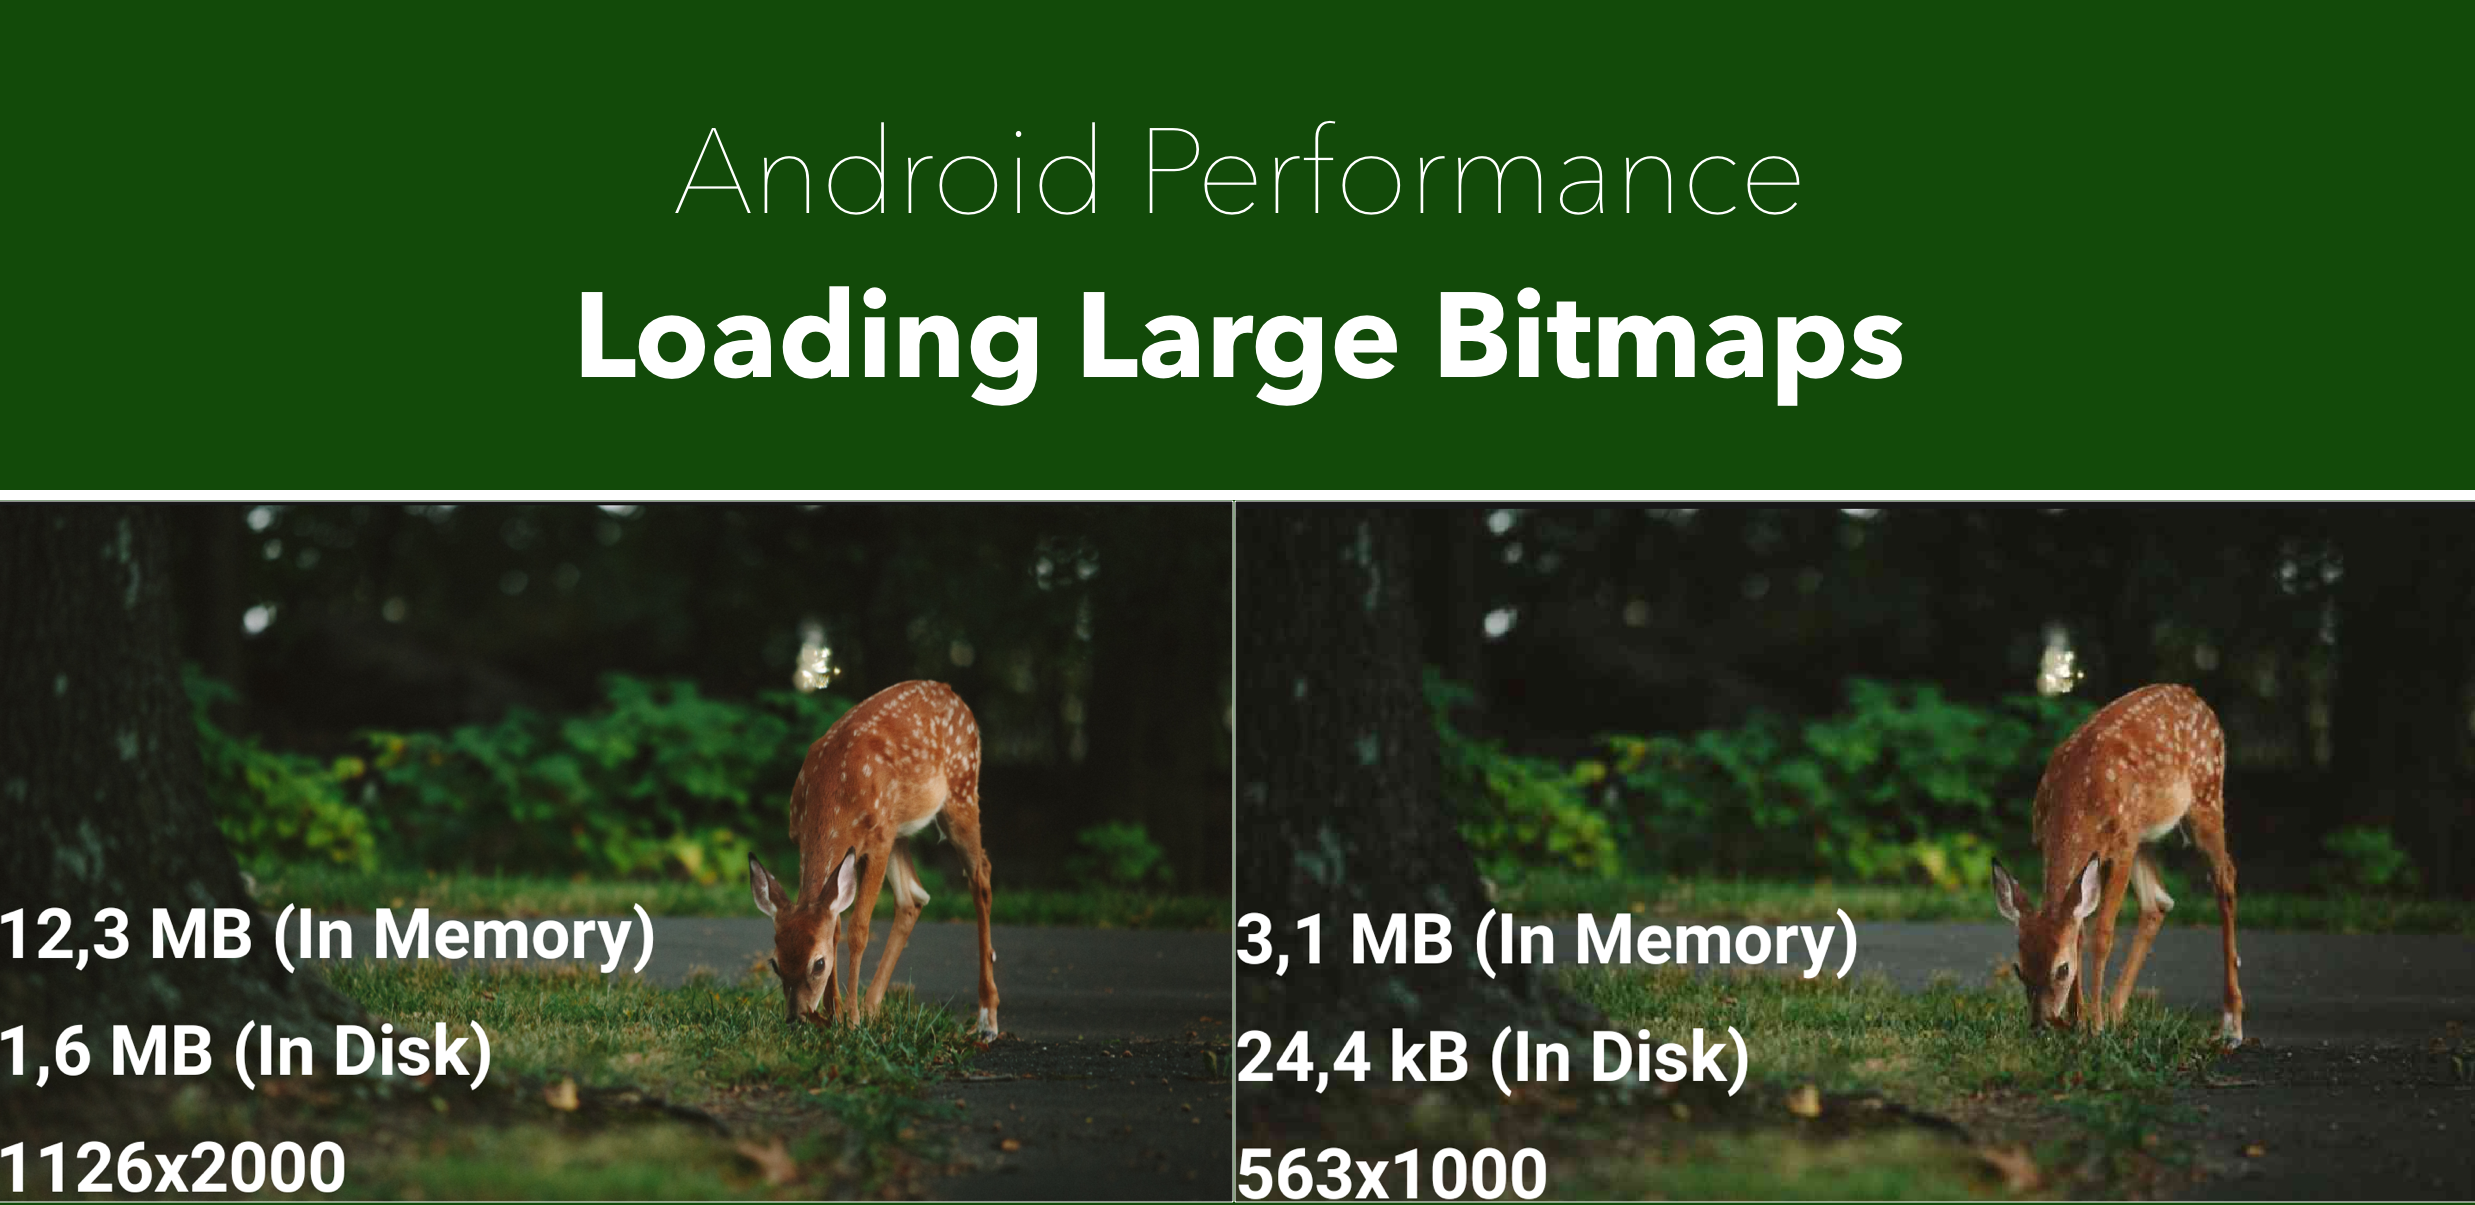 Loading Large Bitmaps Efficiently in Android - AndroidPub